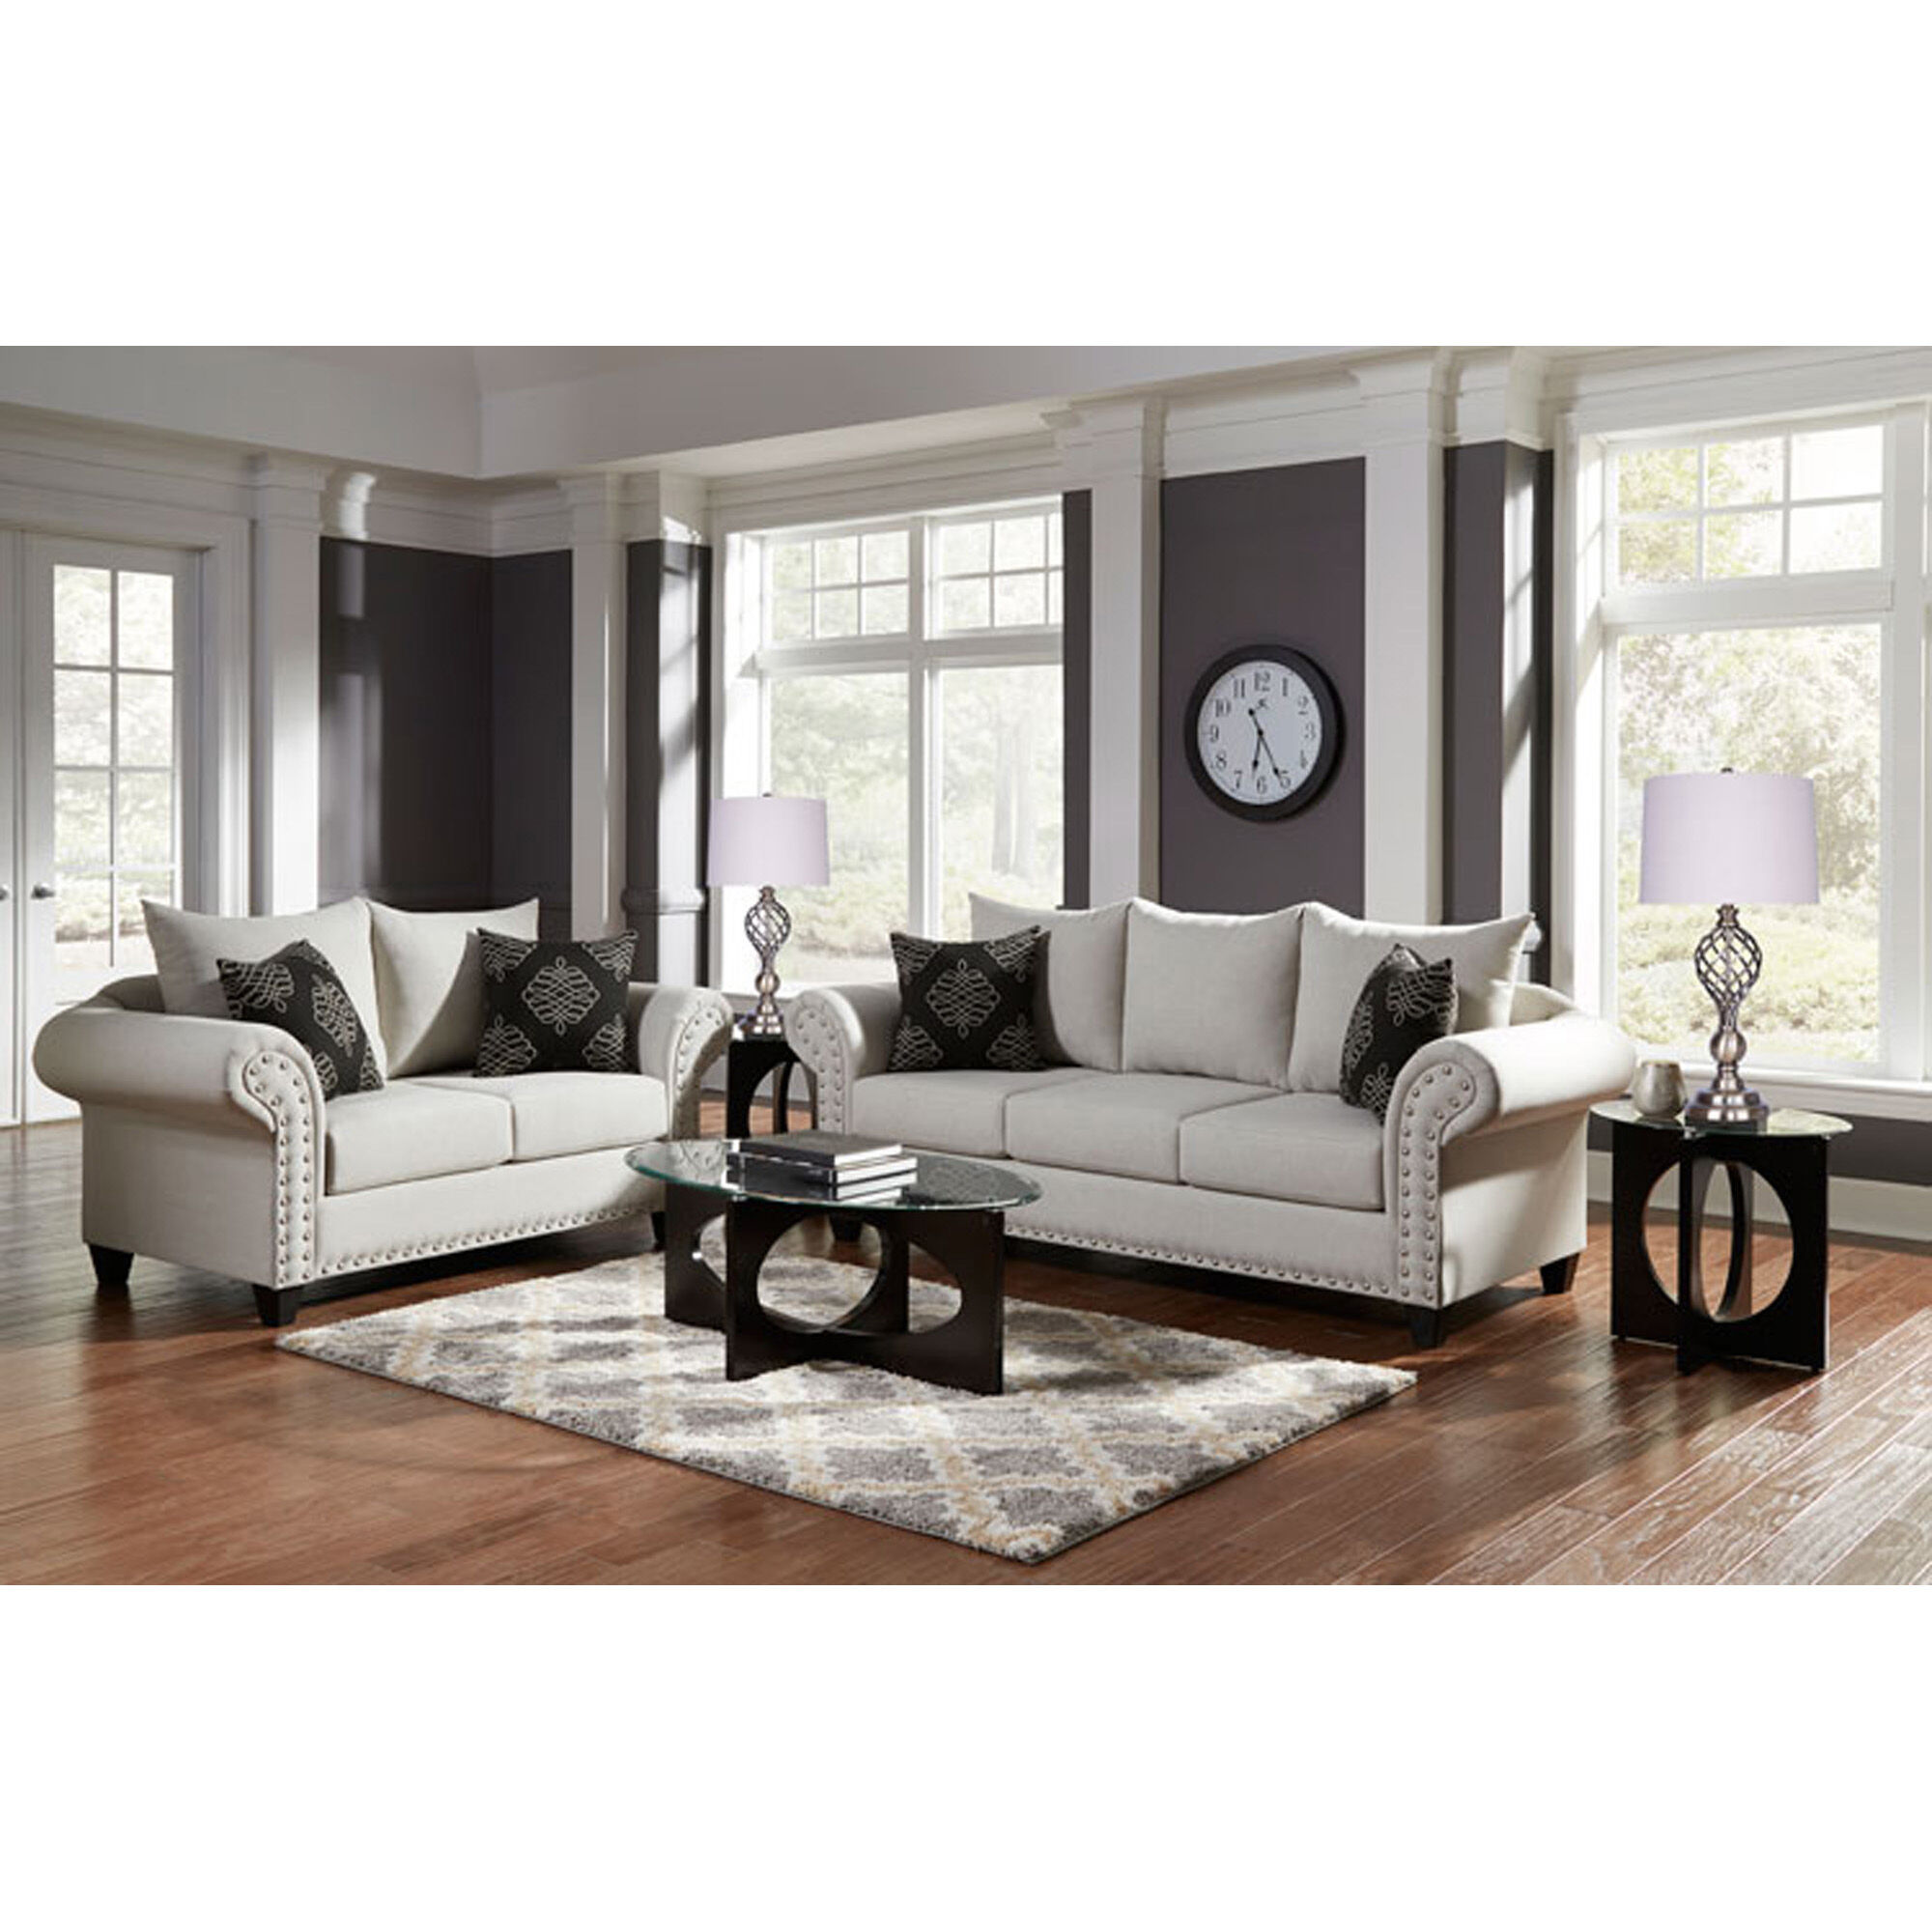 Awesome 7 Piece Beverly Living Room Collection